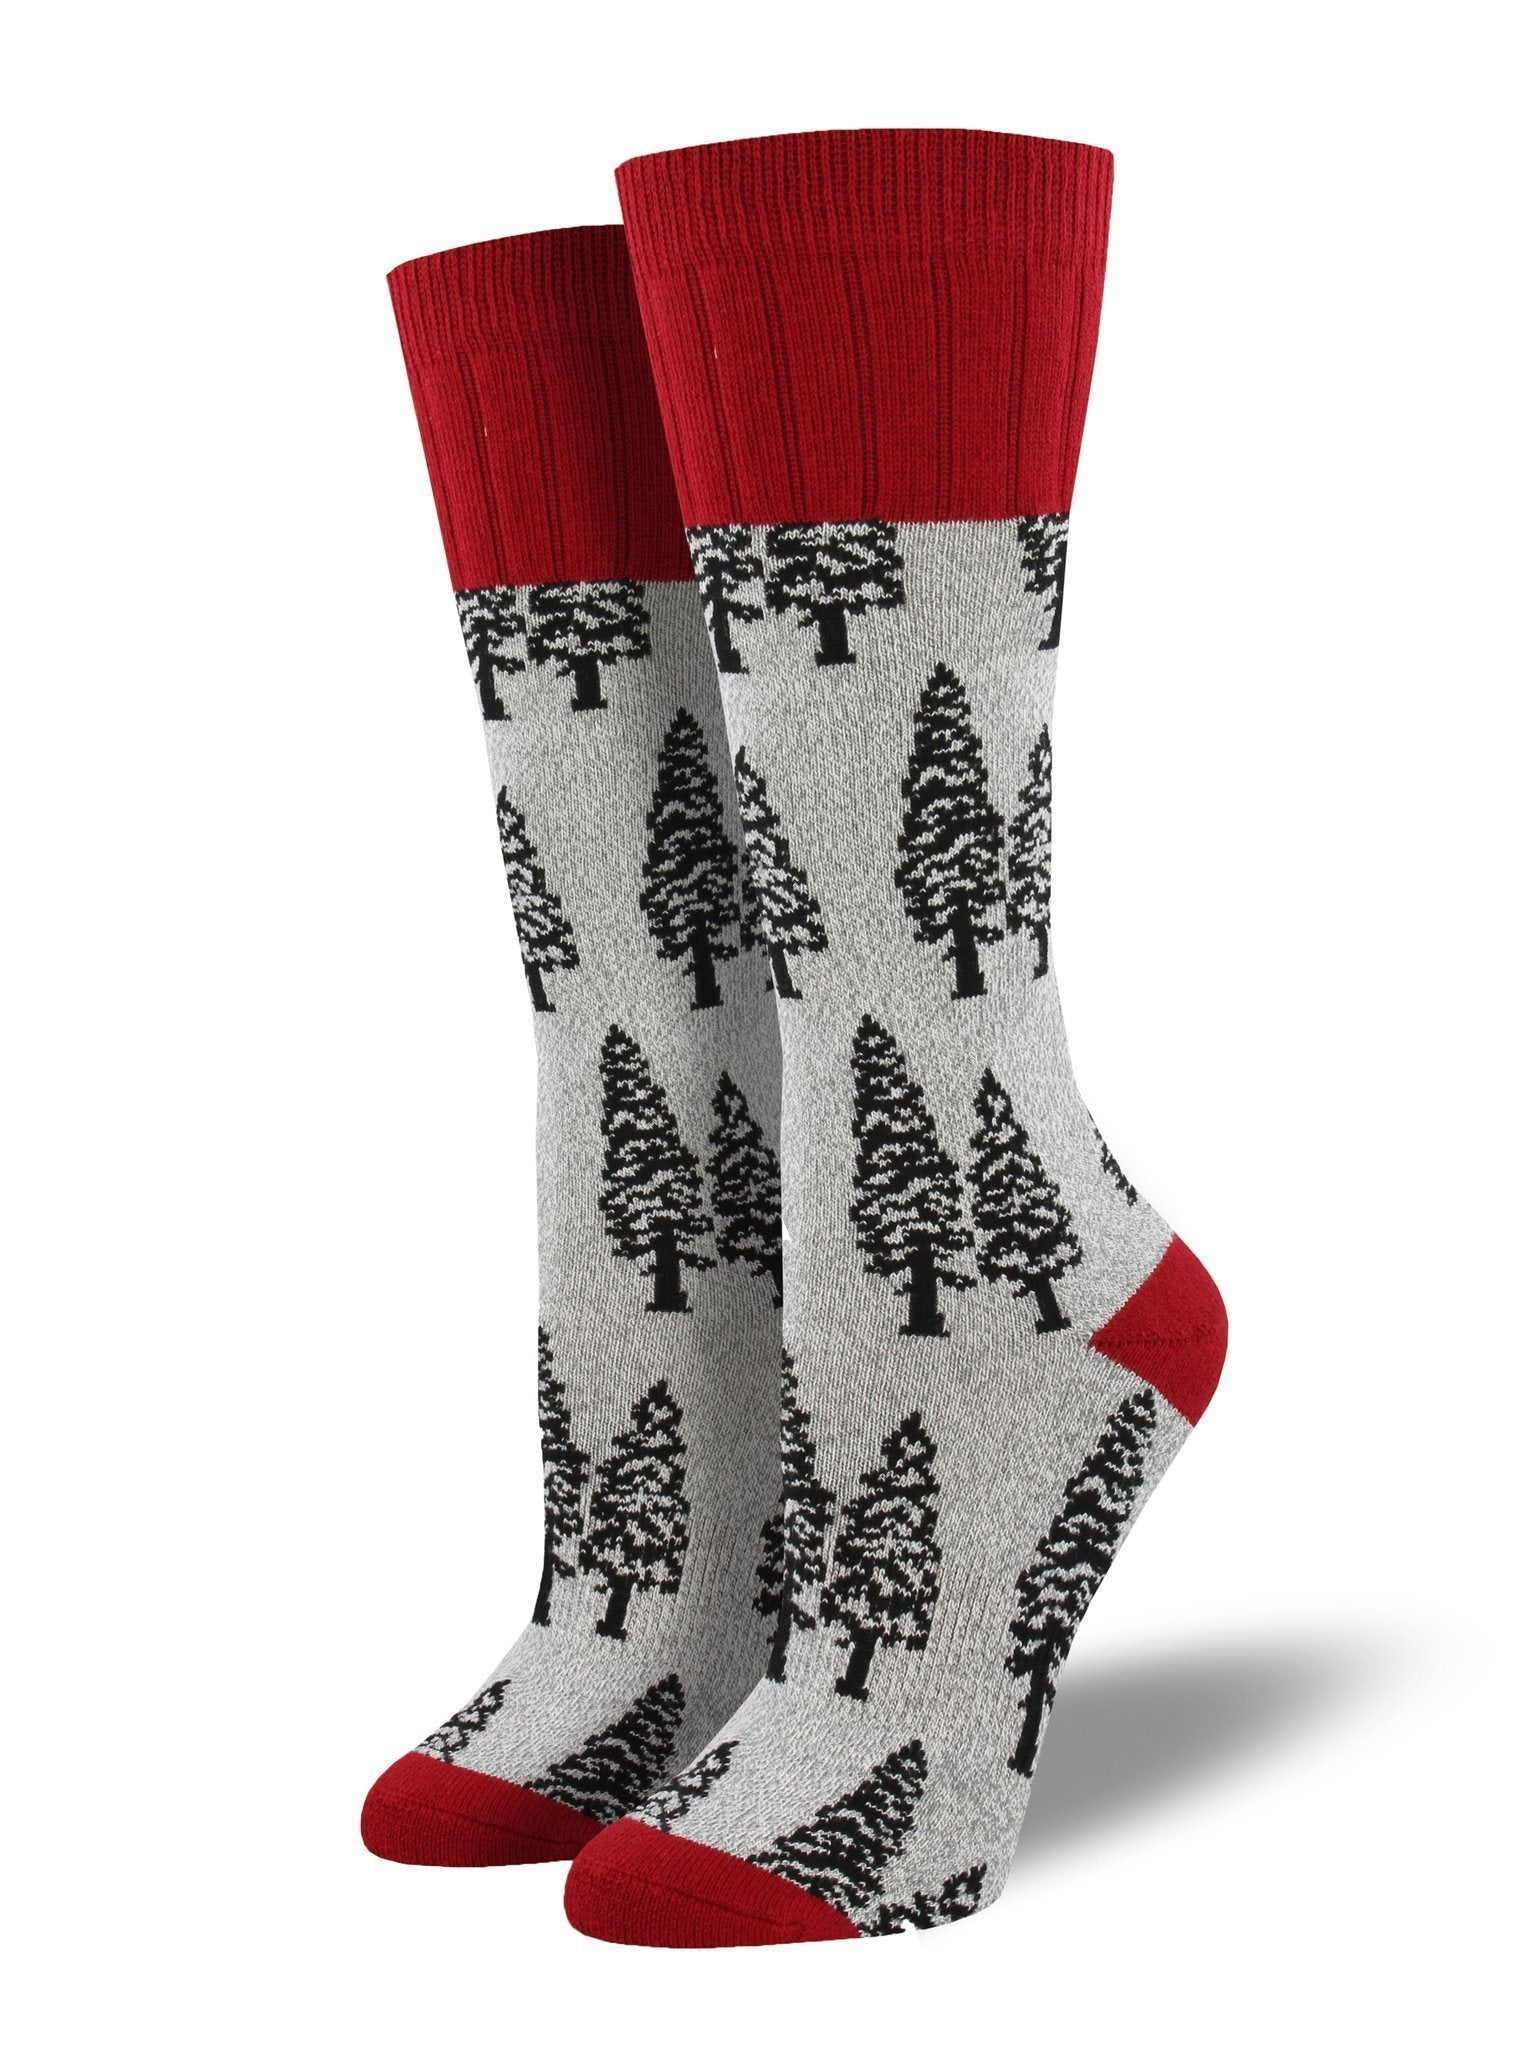 Socksmith - Outlands Trees Boot Socks | Women's - Knock Your Socks Off